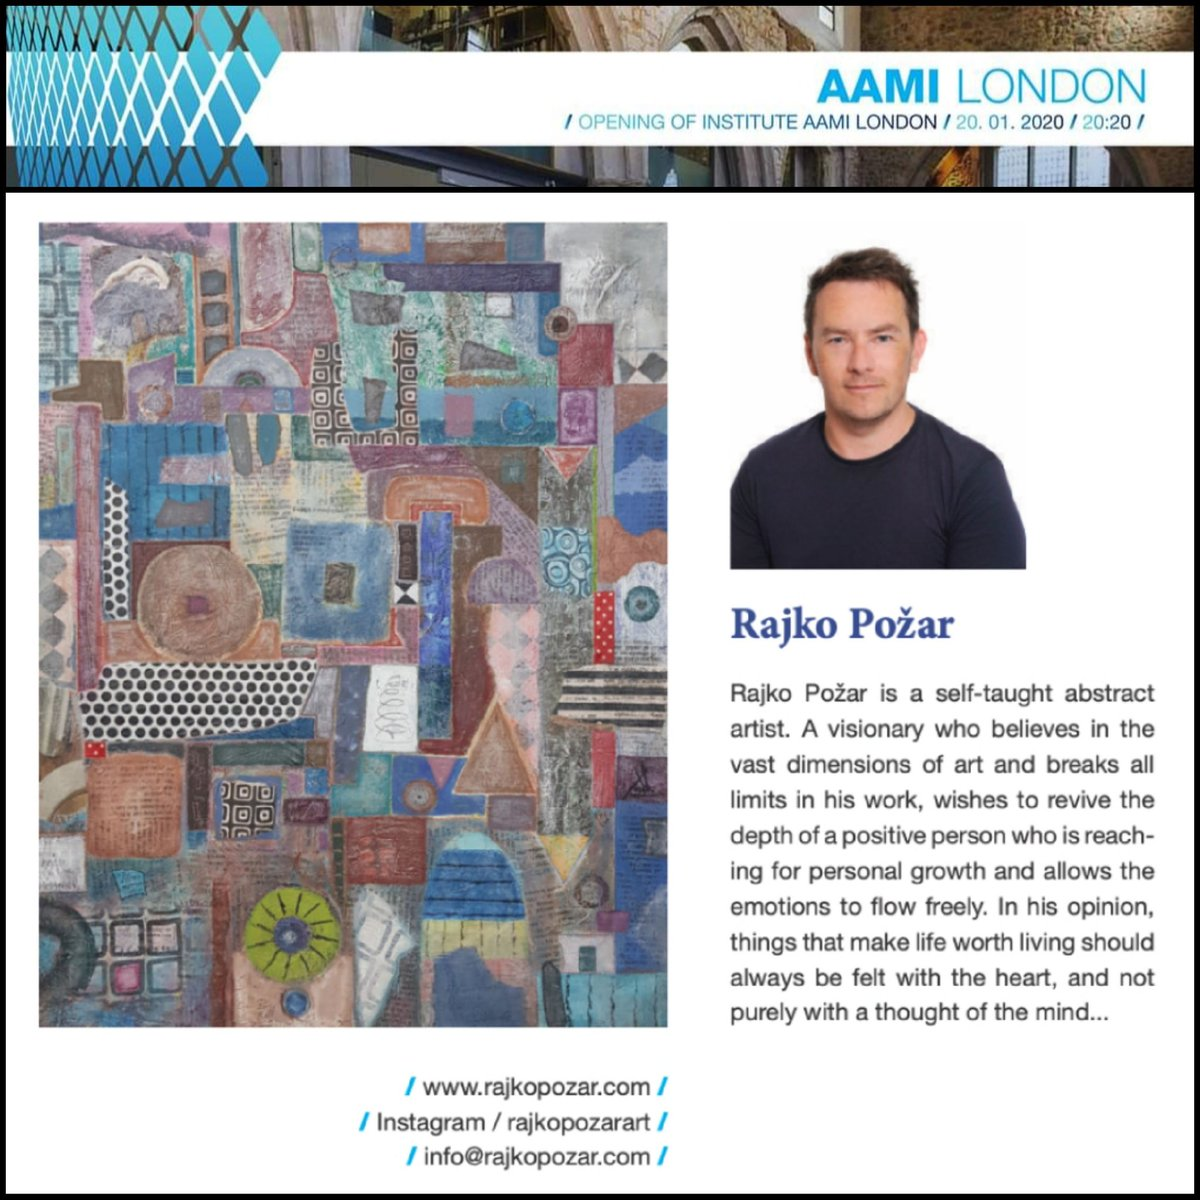 "http://www.rajkopozar.com  NEW EXHIBITION IN AAMI LONDON GALLERY January 20th 2020 at 20.20. I'm so happy and grateful that they represent me and my artwork in AAMI London Gallery  Name of artwork ""Puerto Princesa"" #rajkopožar #aami #btc #btccity  #value #toserve #london#londonpic.twitter.com/USGp461Pon"